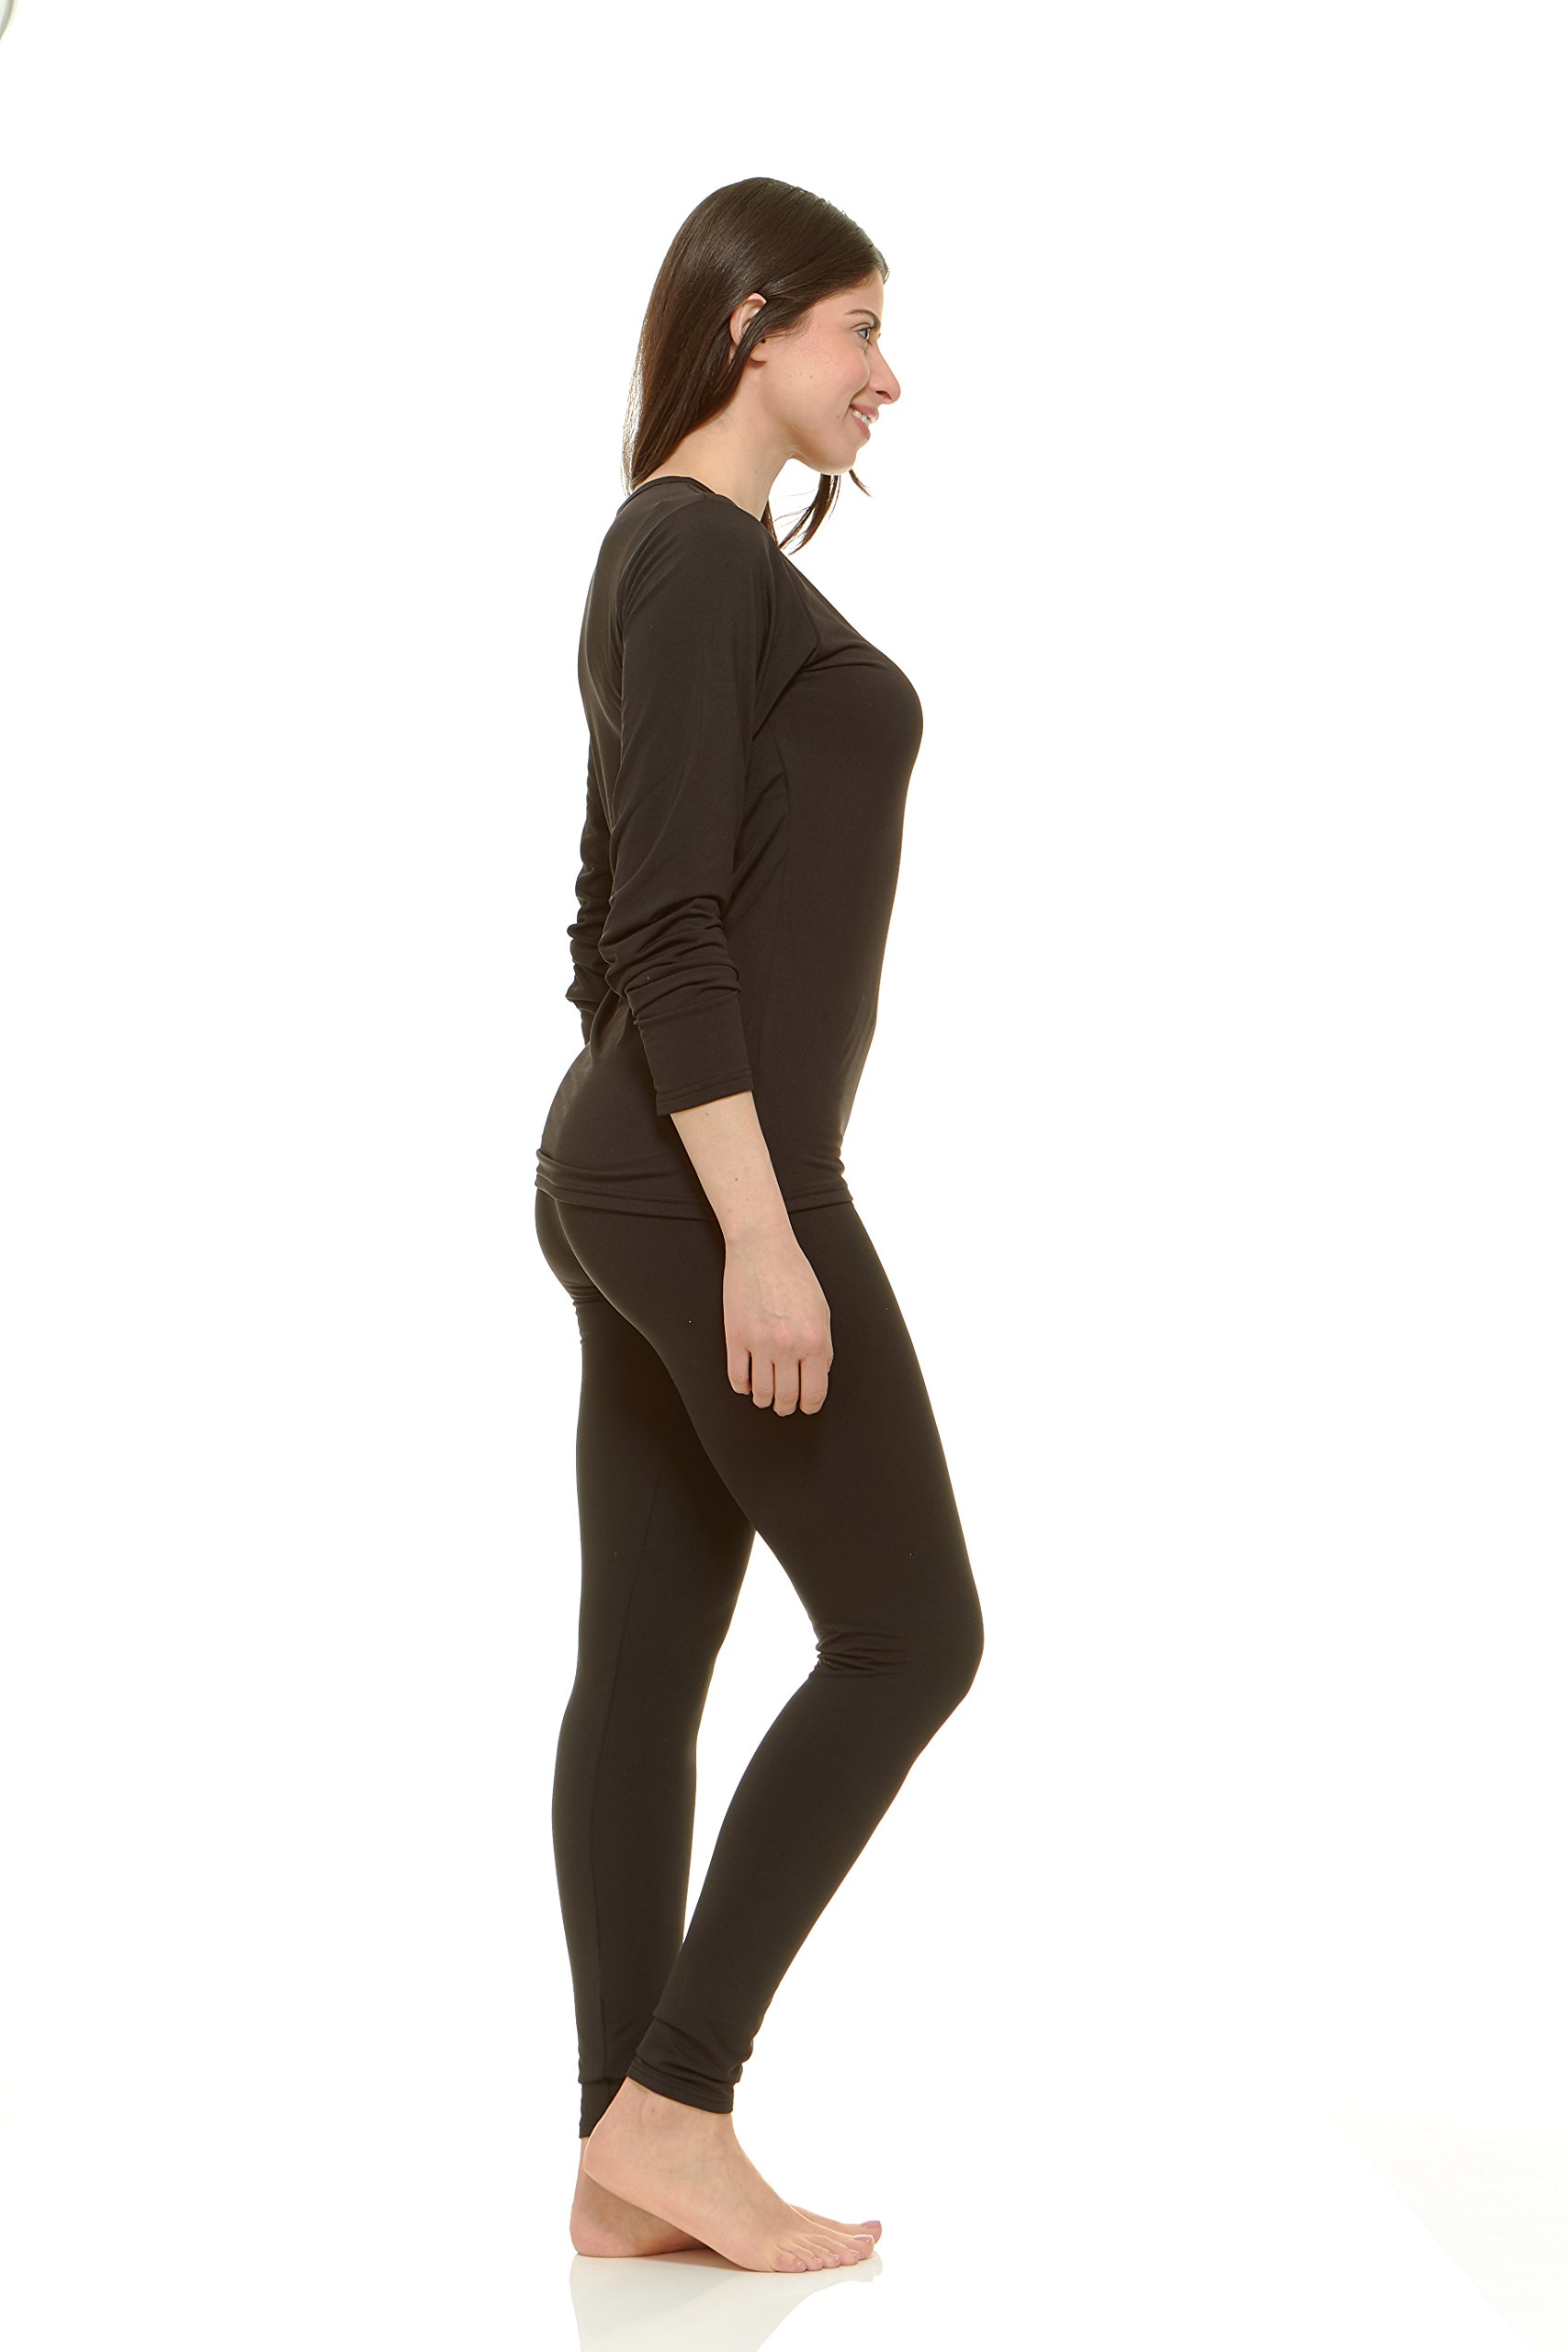 52275c0e7ac Women s Ultra Soft Thermal Underwear Long Johns Set with Fleece Lined